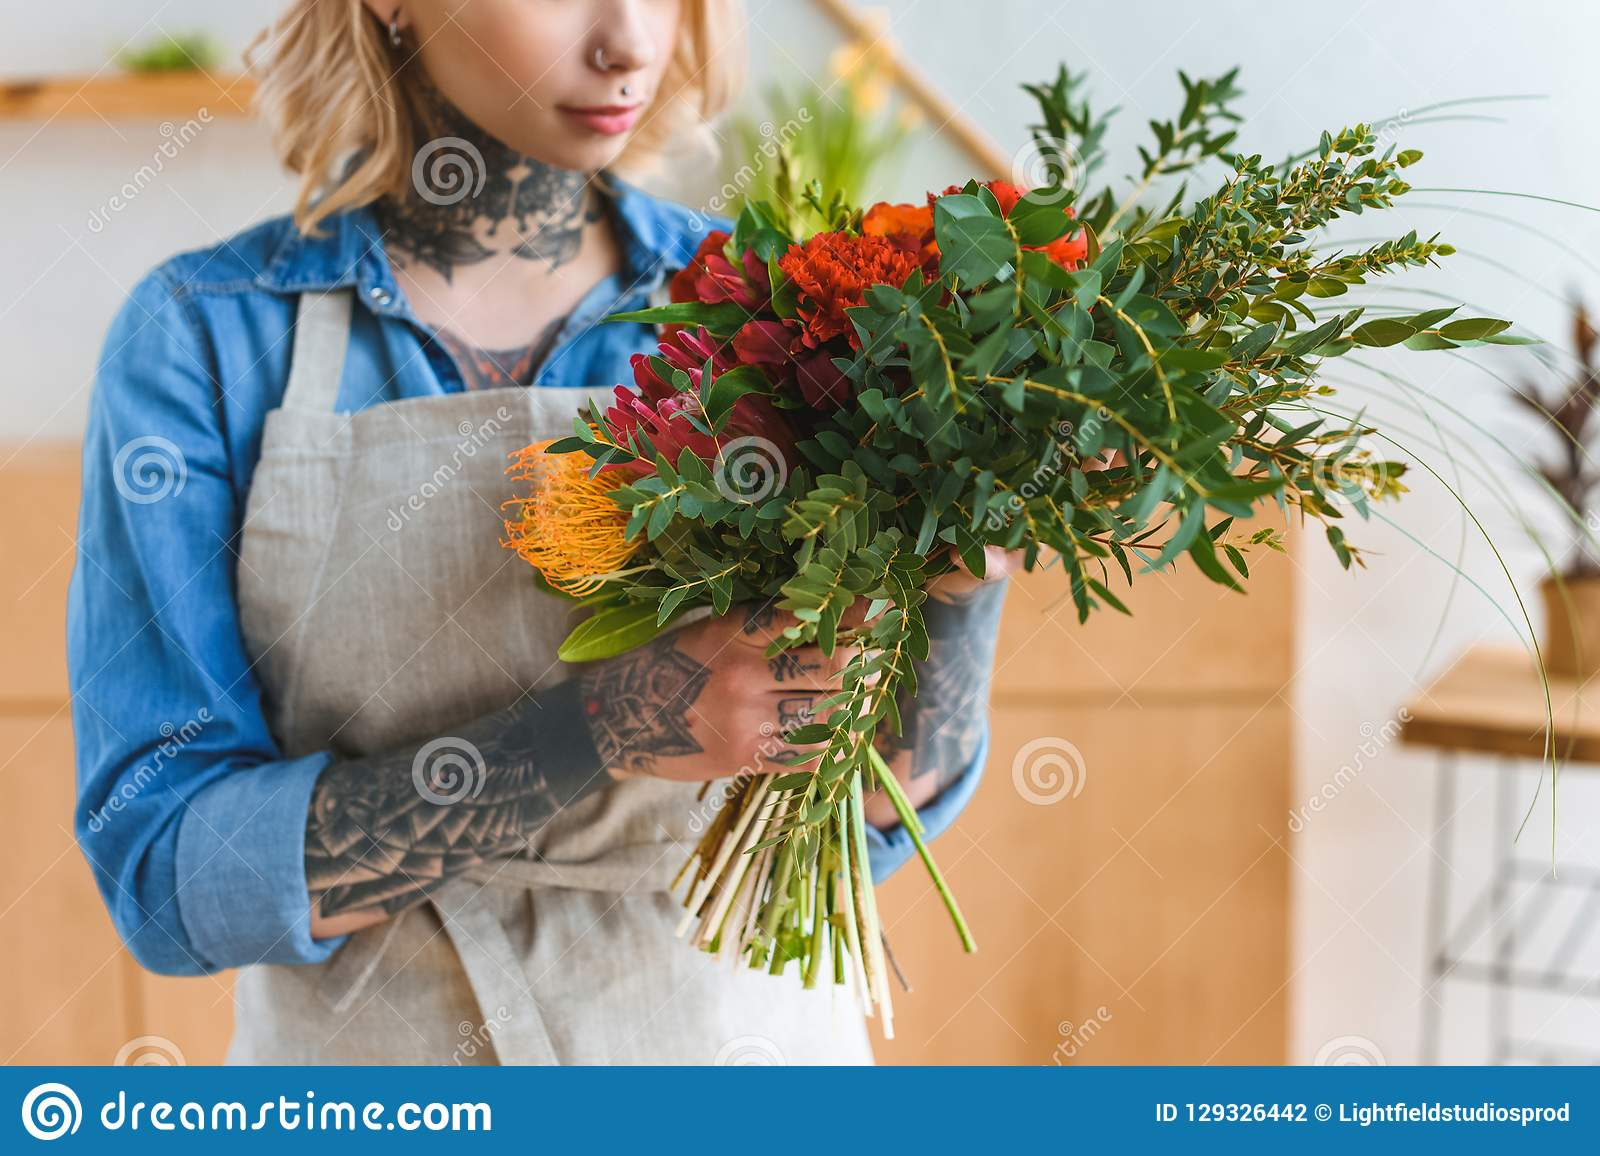 cropped shot of young florist with tattoos holding flower